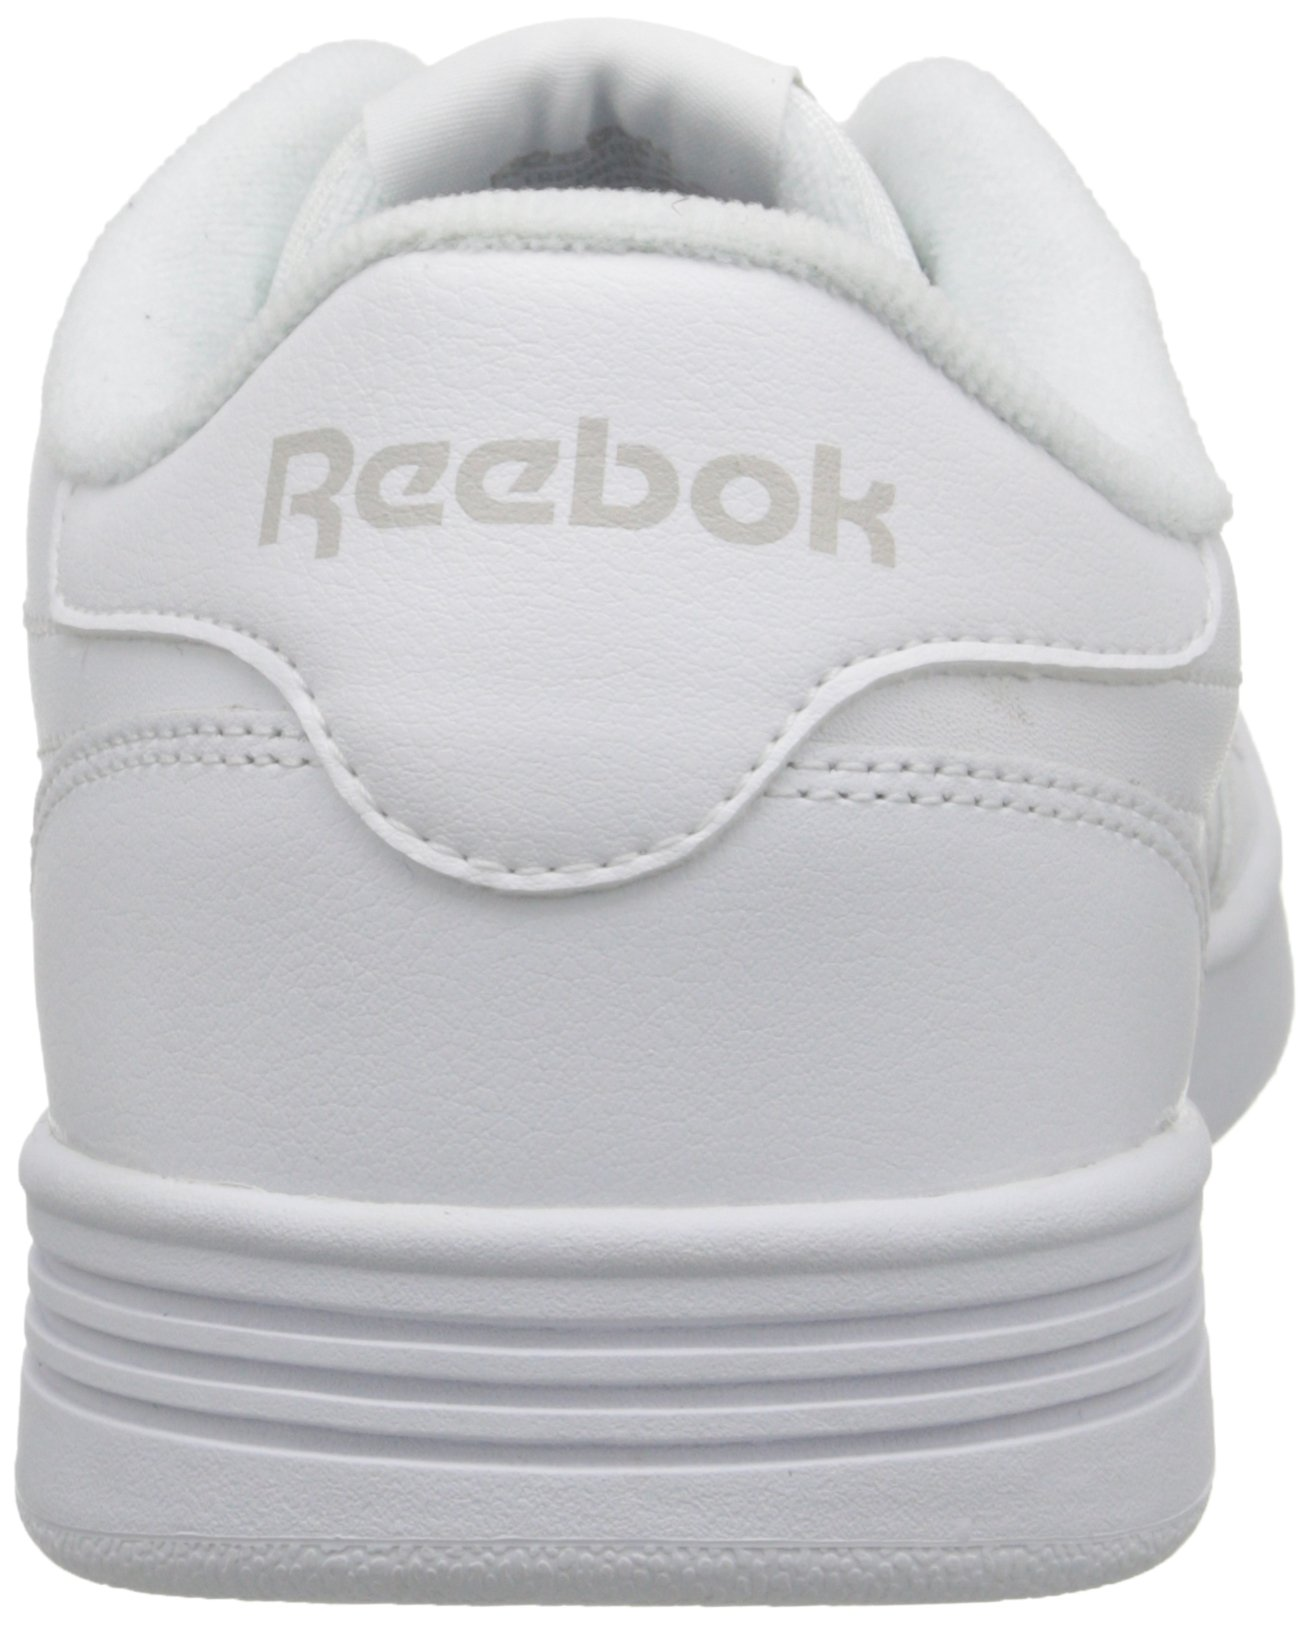 Reebok Men s Club MEMT Fashion Sneaker cb1b151c0